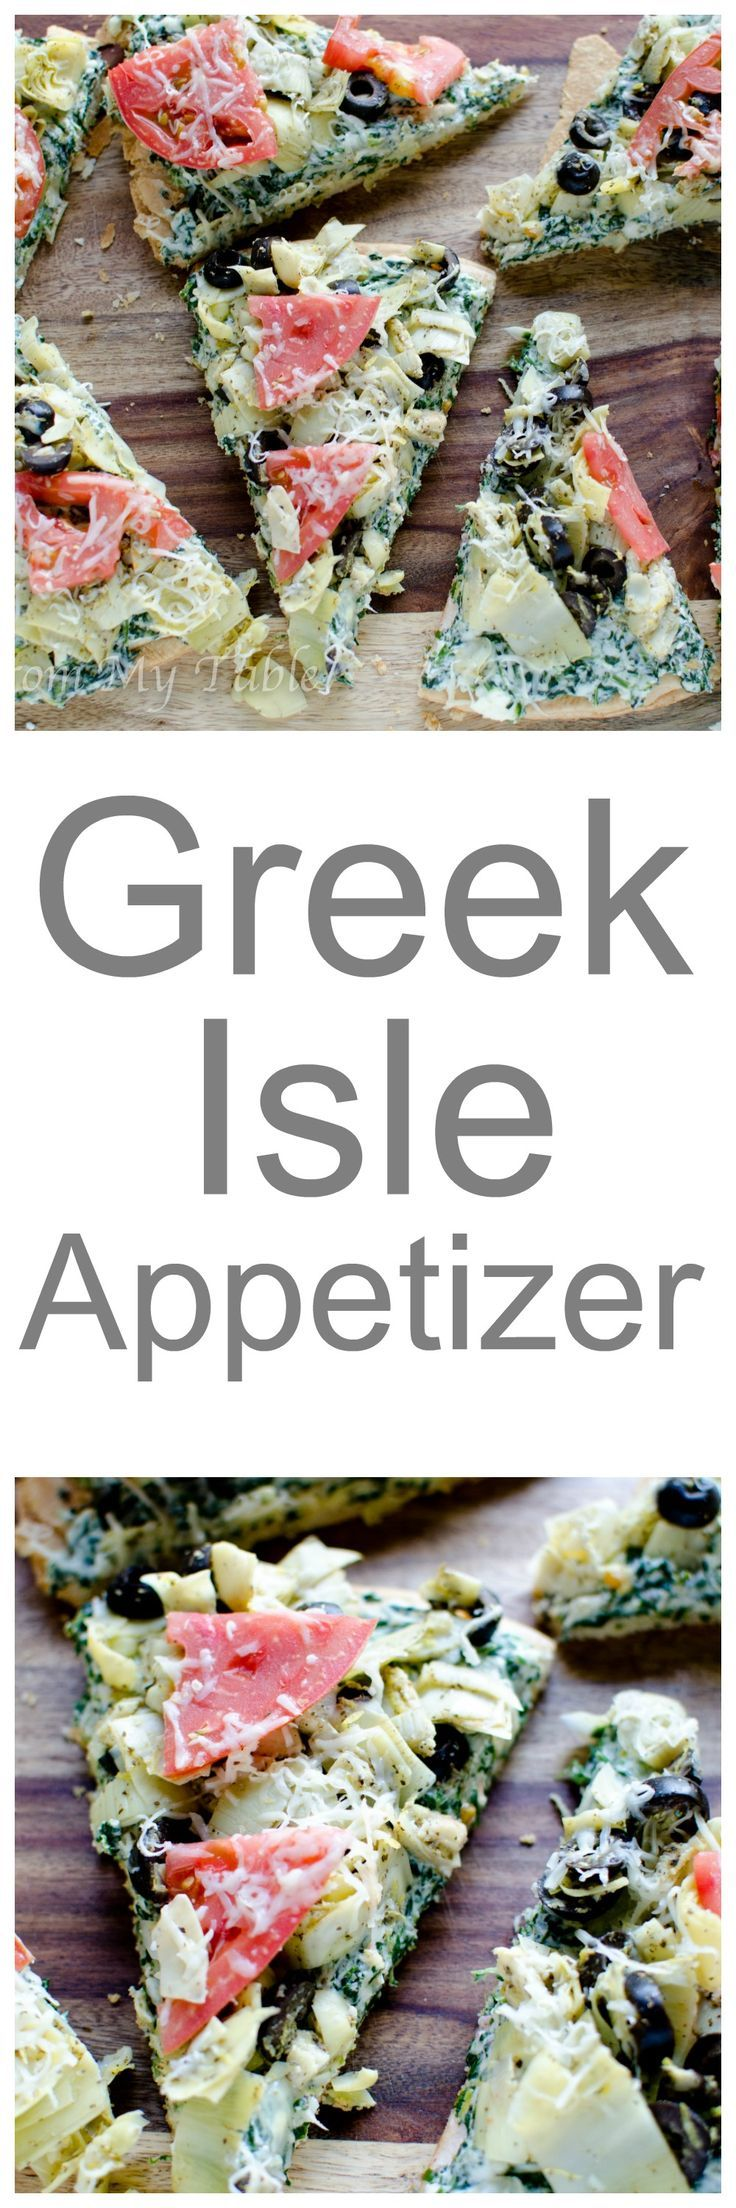 Need a quick and easy appetizer? This Greek Isle appetizer will not disappoint! Mediterranean flavors atop a flaky secret ingredient crust! Bet you can't eat just one piece! This perfect for your next gathering or whip it up for an afternoon of football.